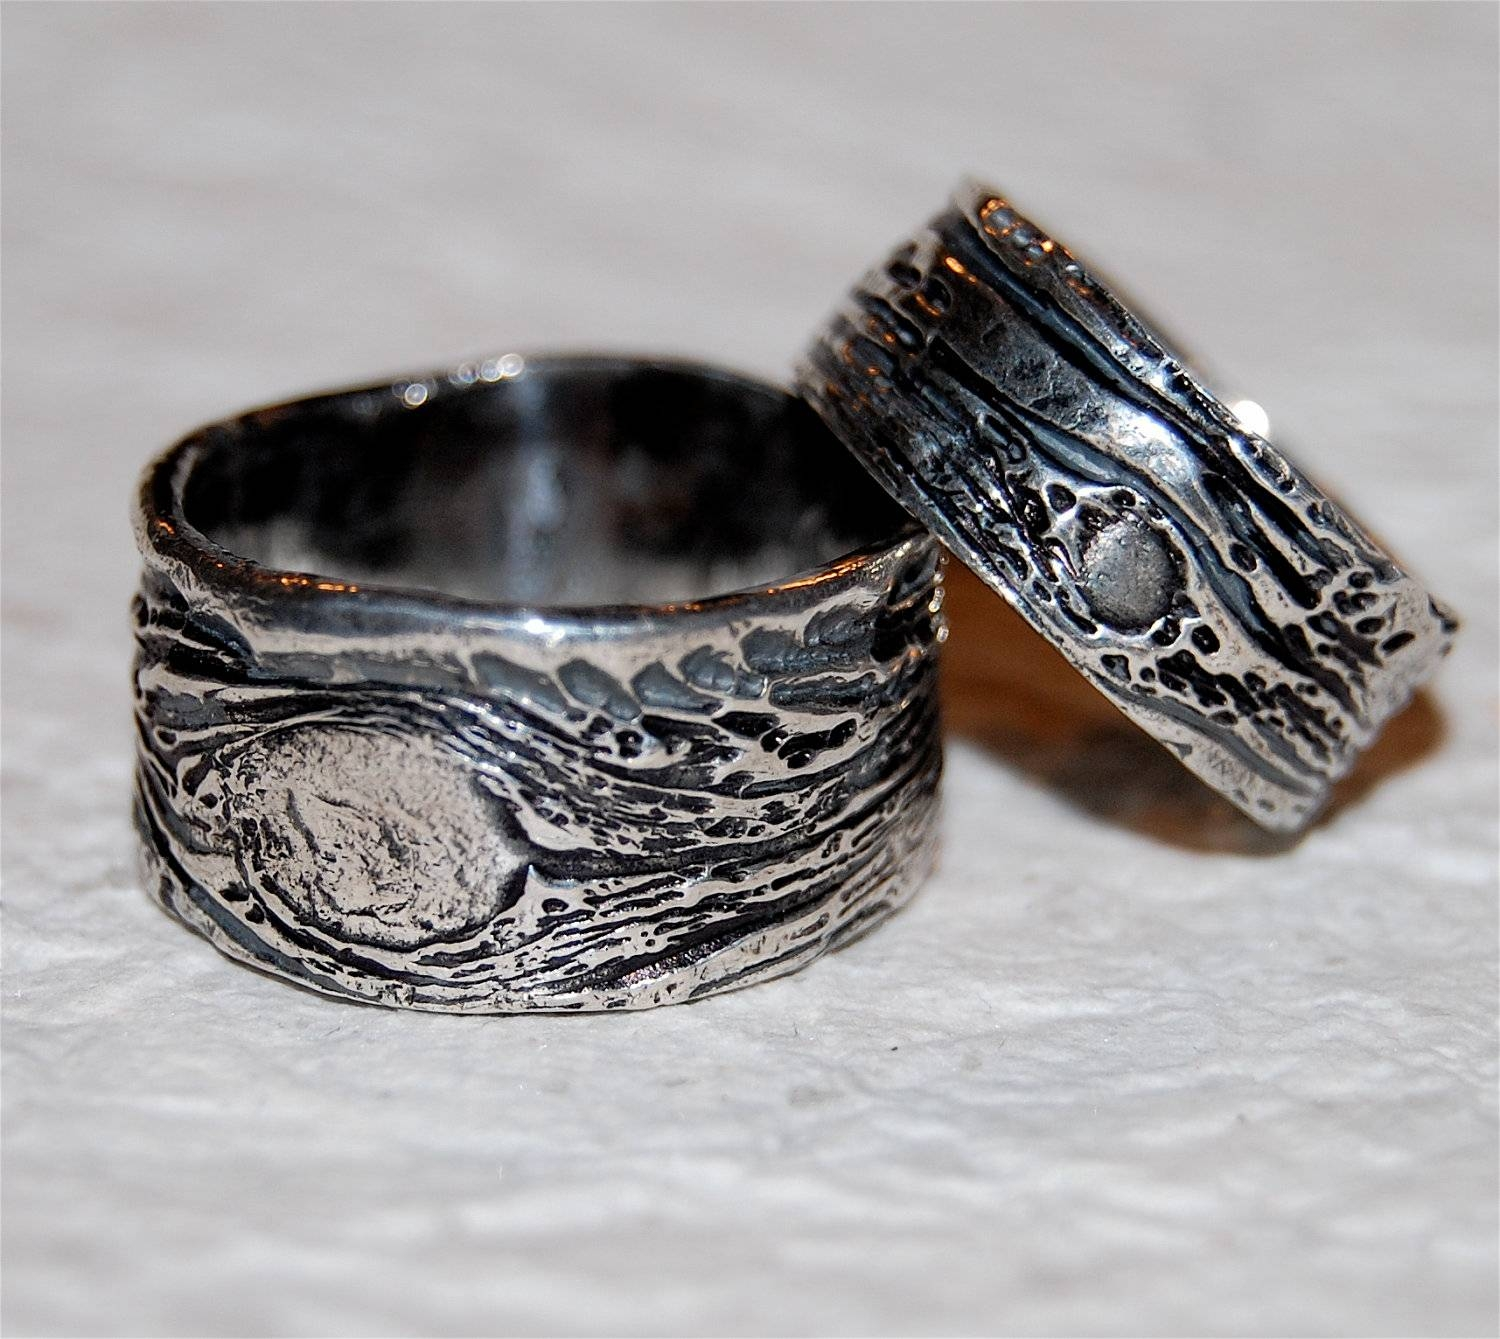 Wedding Rings Ideas: His And Her Carved Camo Wedding Rings Pertaining To His And Hers Camo Wedding Bands (View 15 of 15)